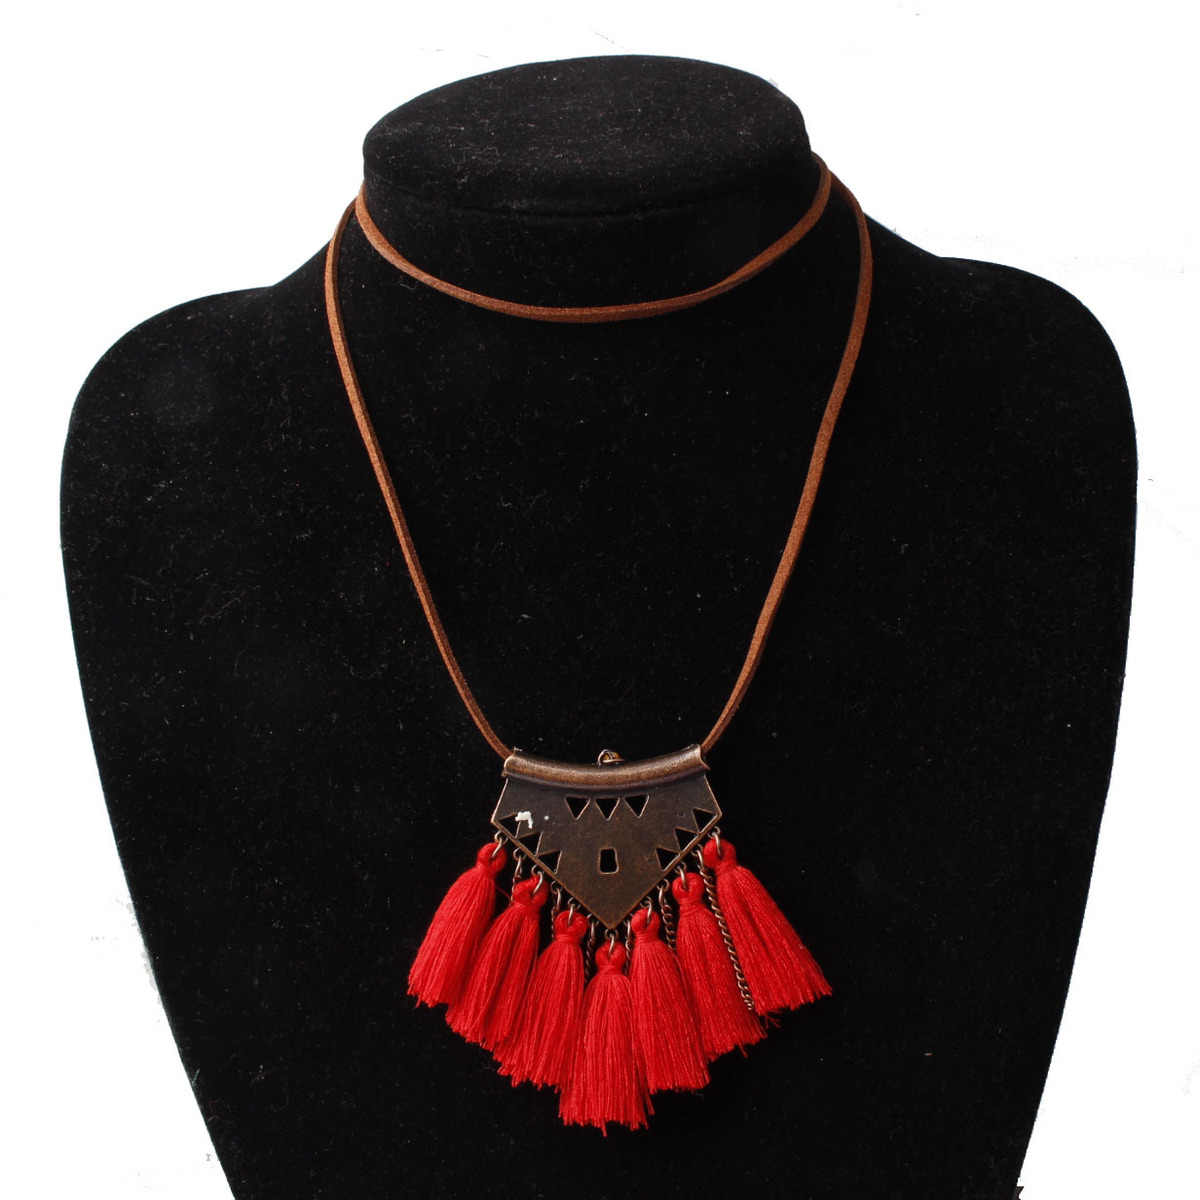 Vintage Gold Tassels Chain Pendant Necklace Fashion Romantic Red White Pink Sweater Chain Necklace For Woman Jewelry